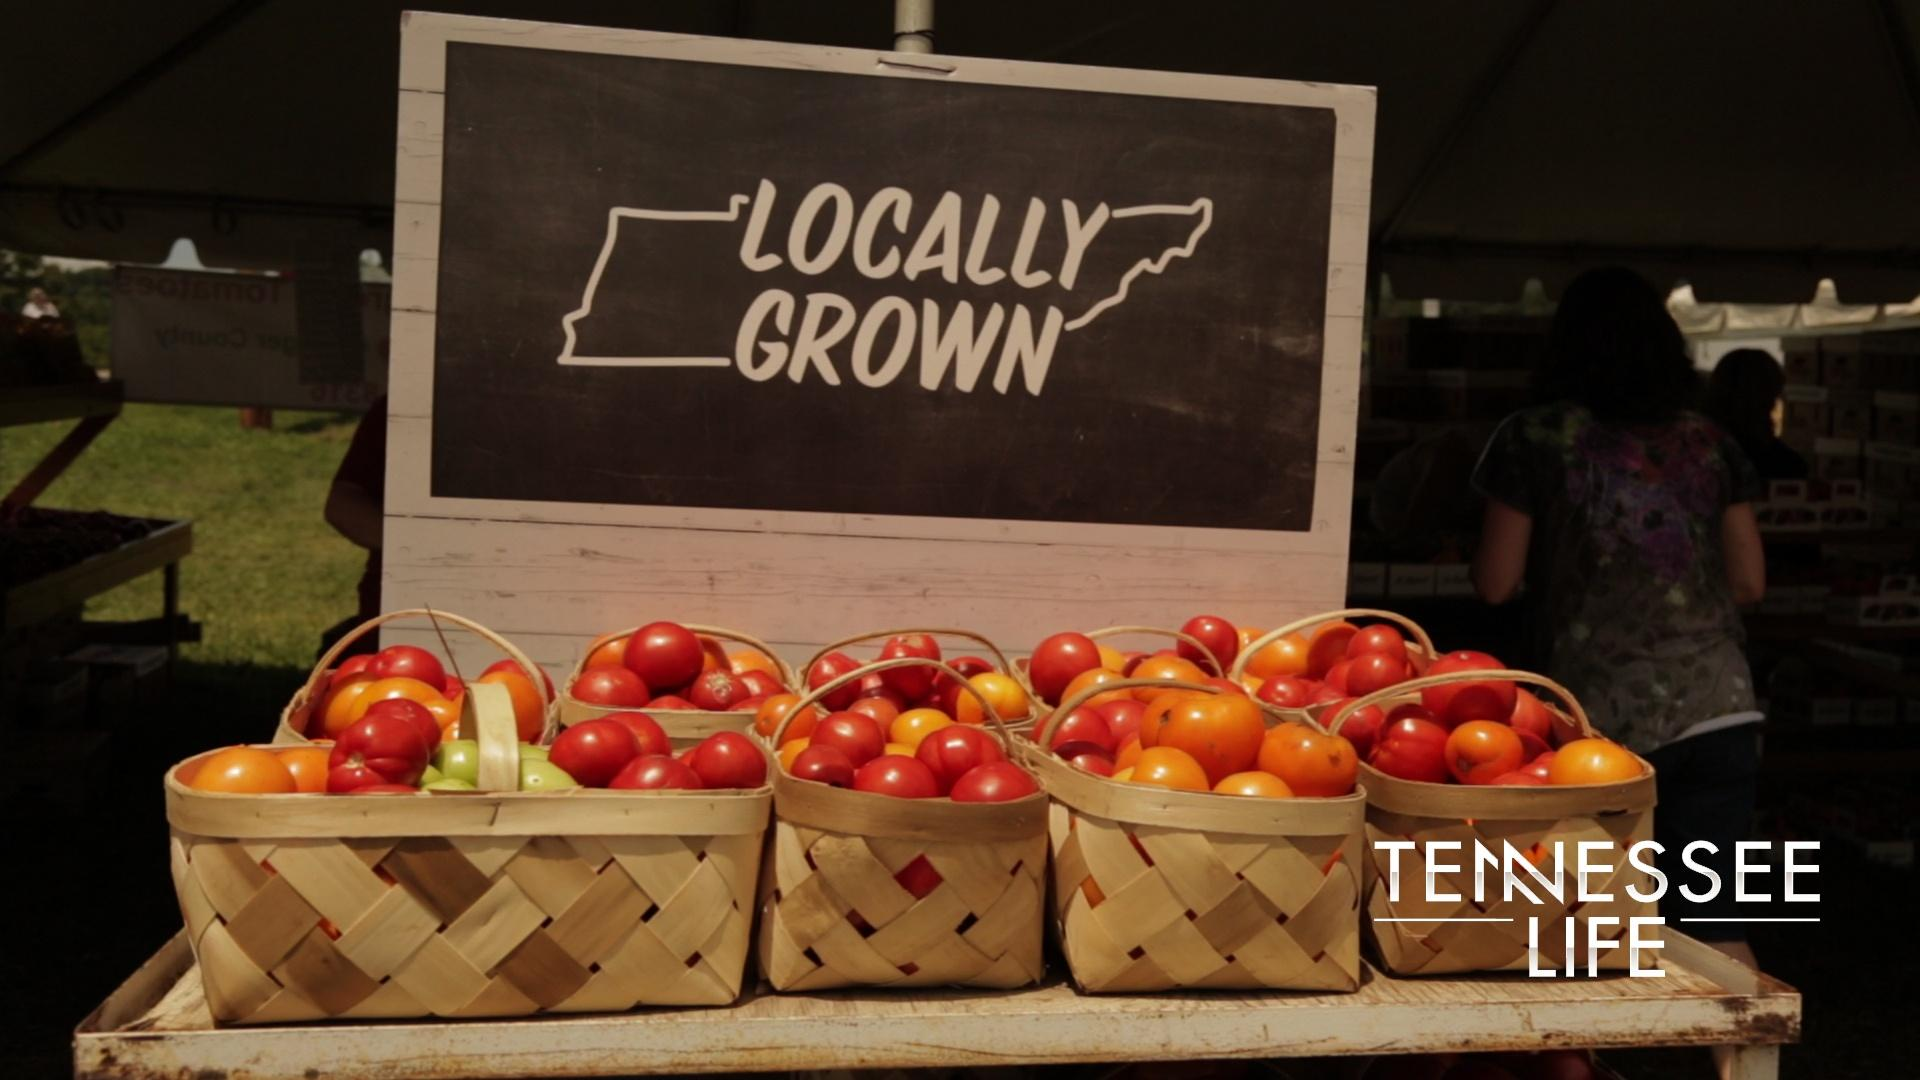 Tennessee Life - 603 - Tomatoes, Blueberries &